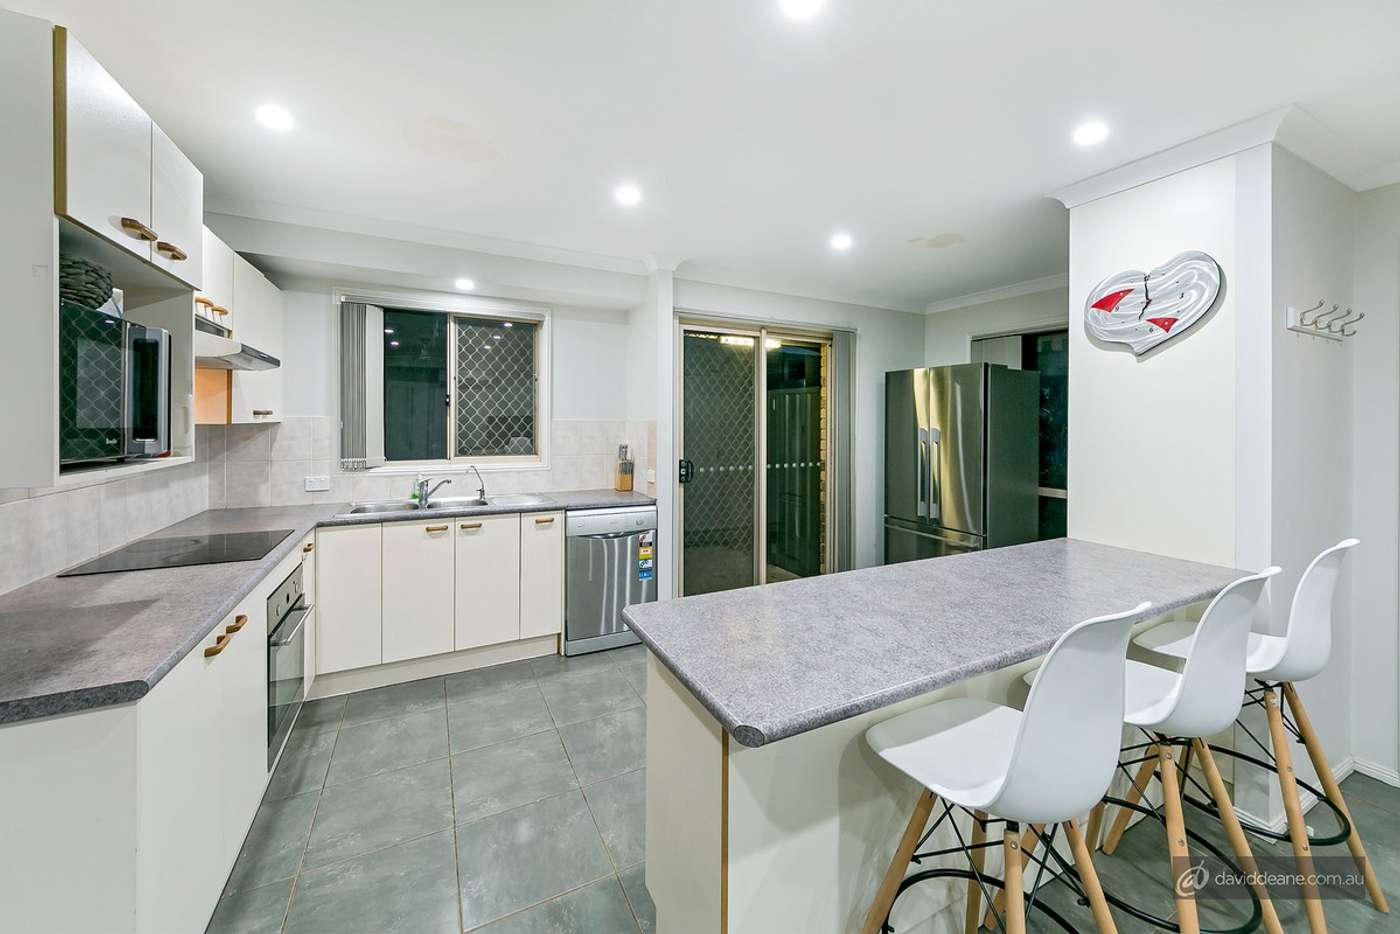 Seventh view of Homely house listing, 4 Marcia-Belle Place, Joyner QLD 4500